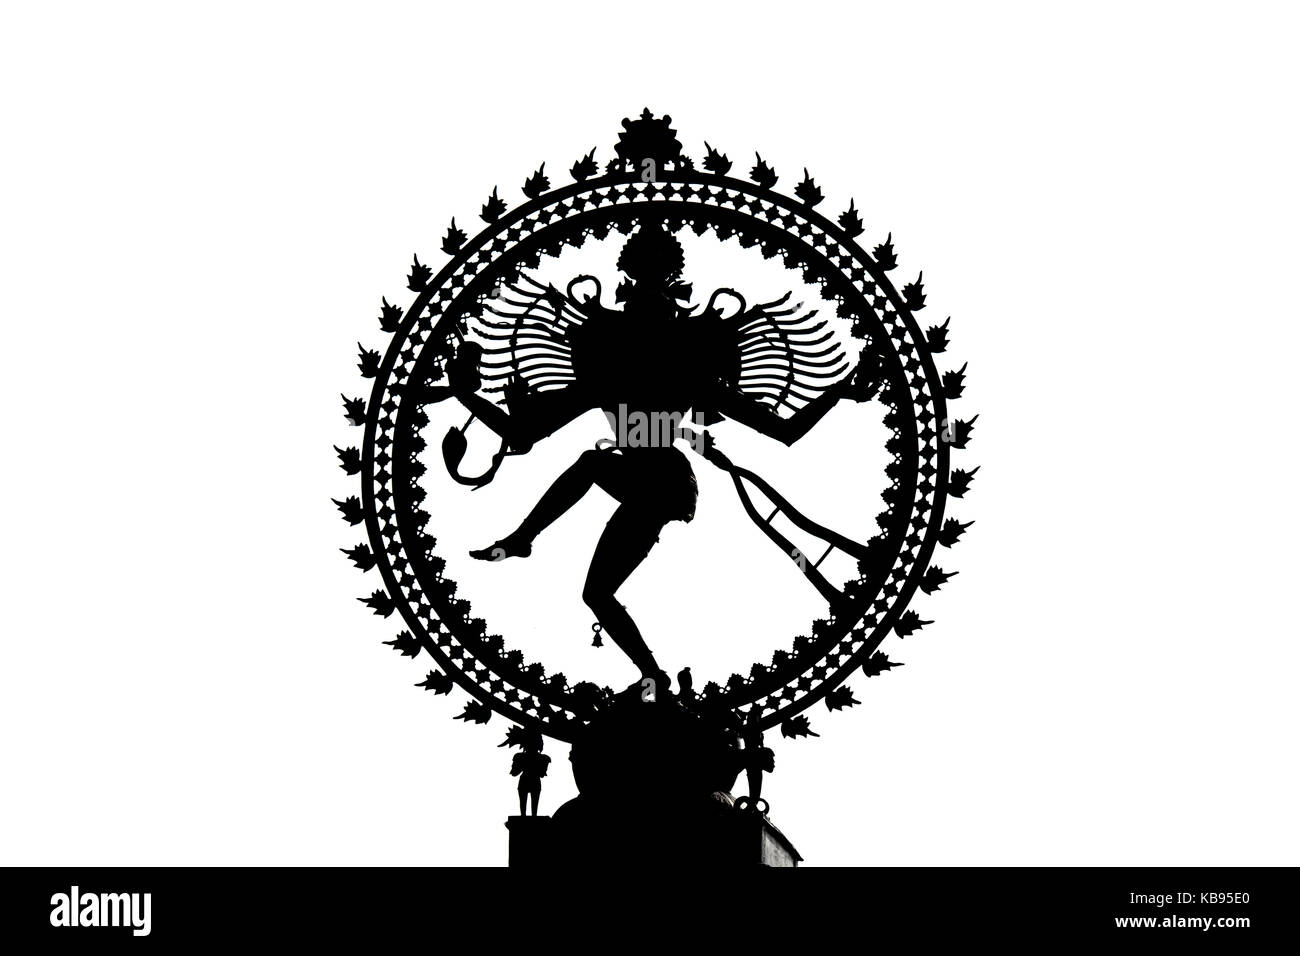 Cosmic shiva stock photos cosmic shiva stock images alamy silhouette of nataraja depiction of the hindu god shiva as the cosmic ecstatic dancer biocorpaavc Image collections